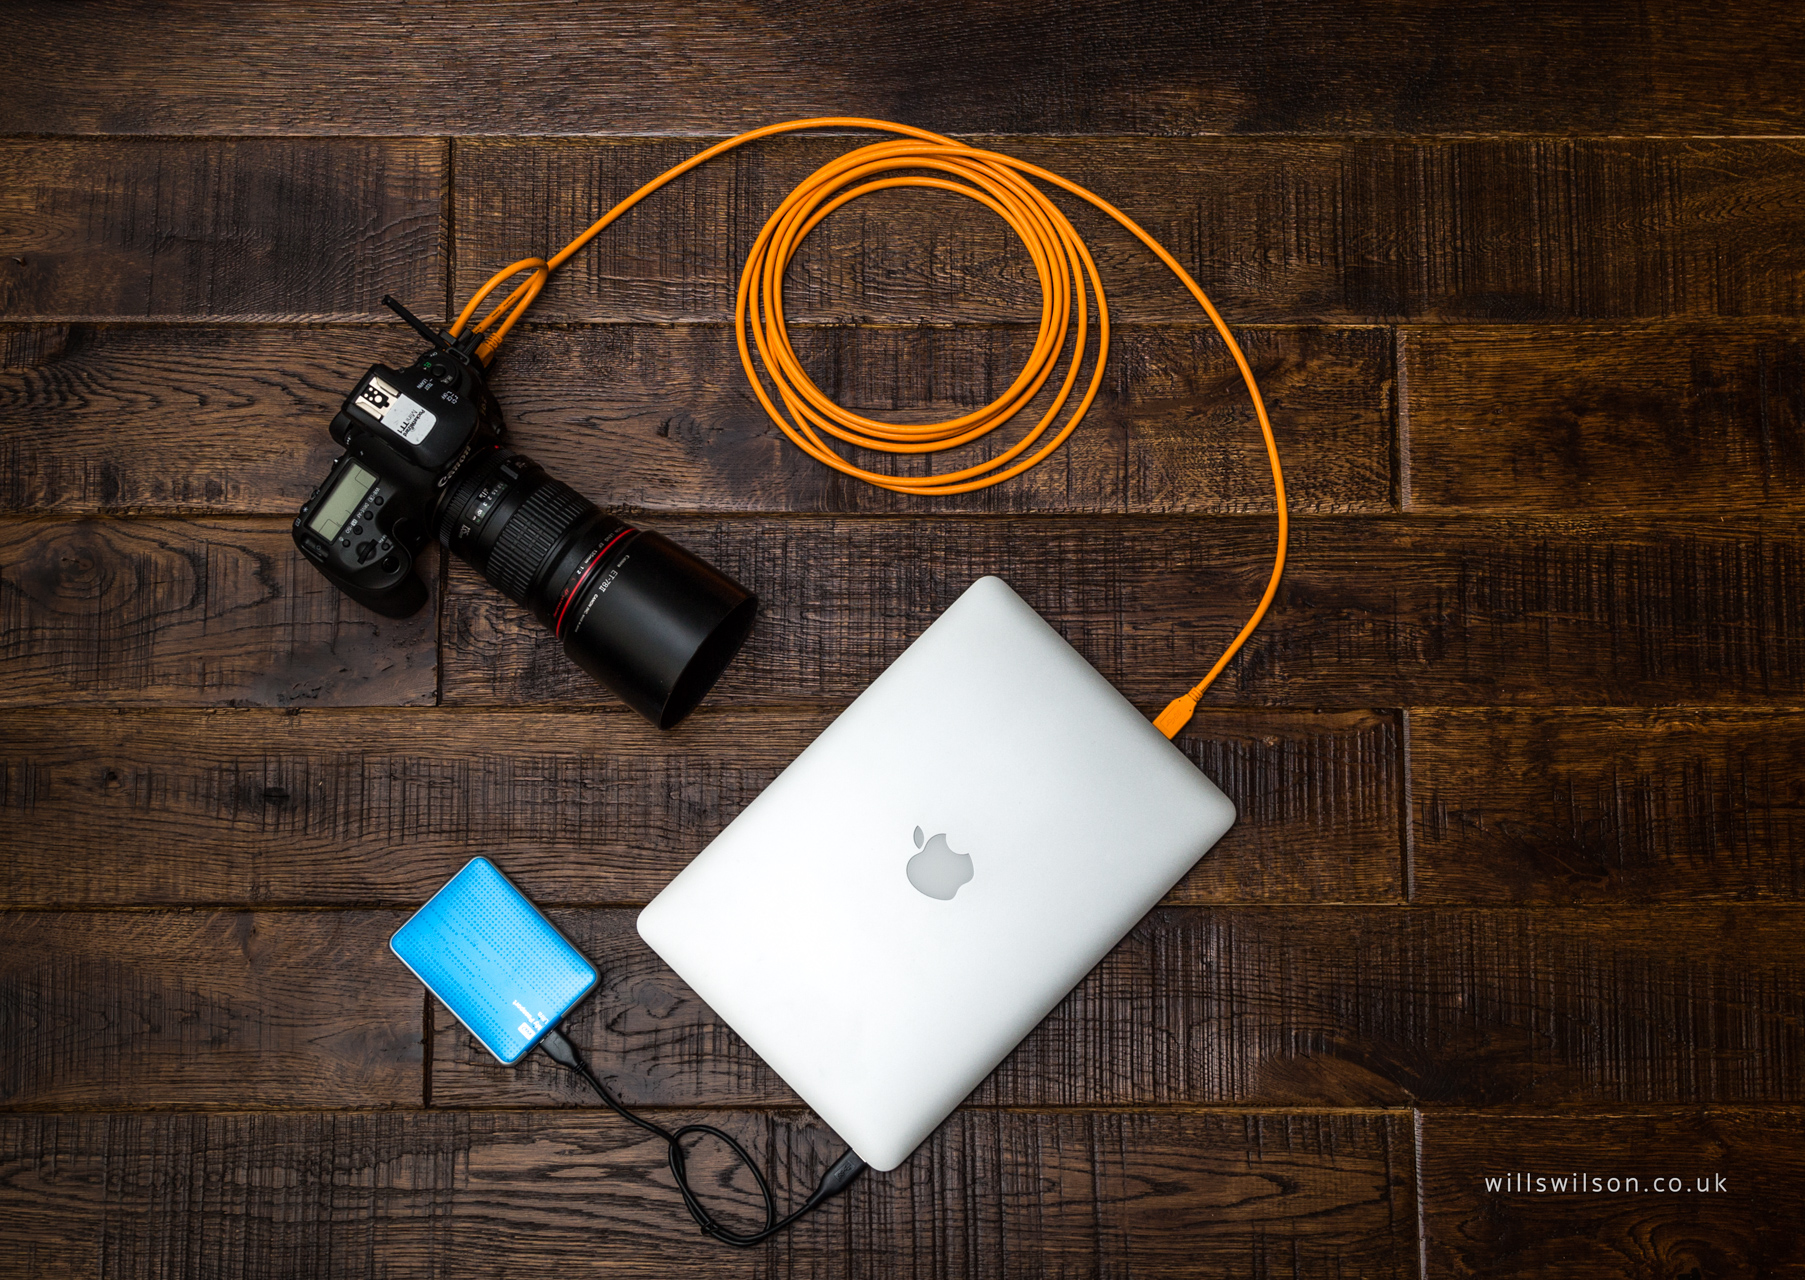 TetherTools USB 3 super cable for the Canon 5Ds and MacBook Pro